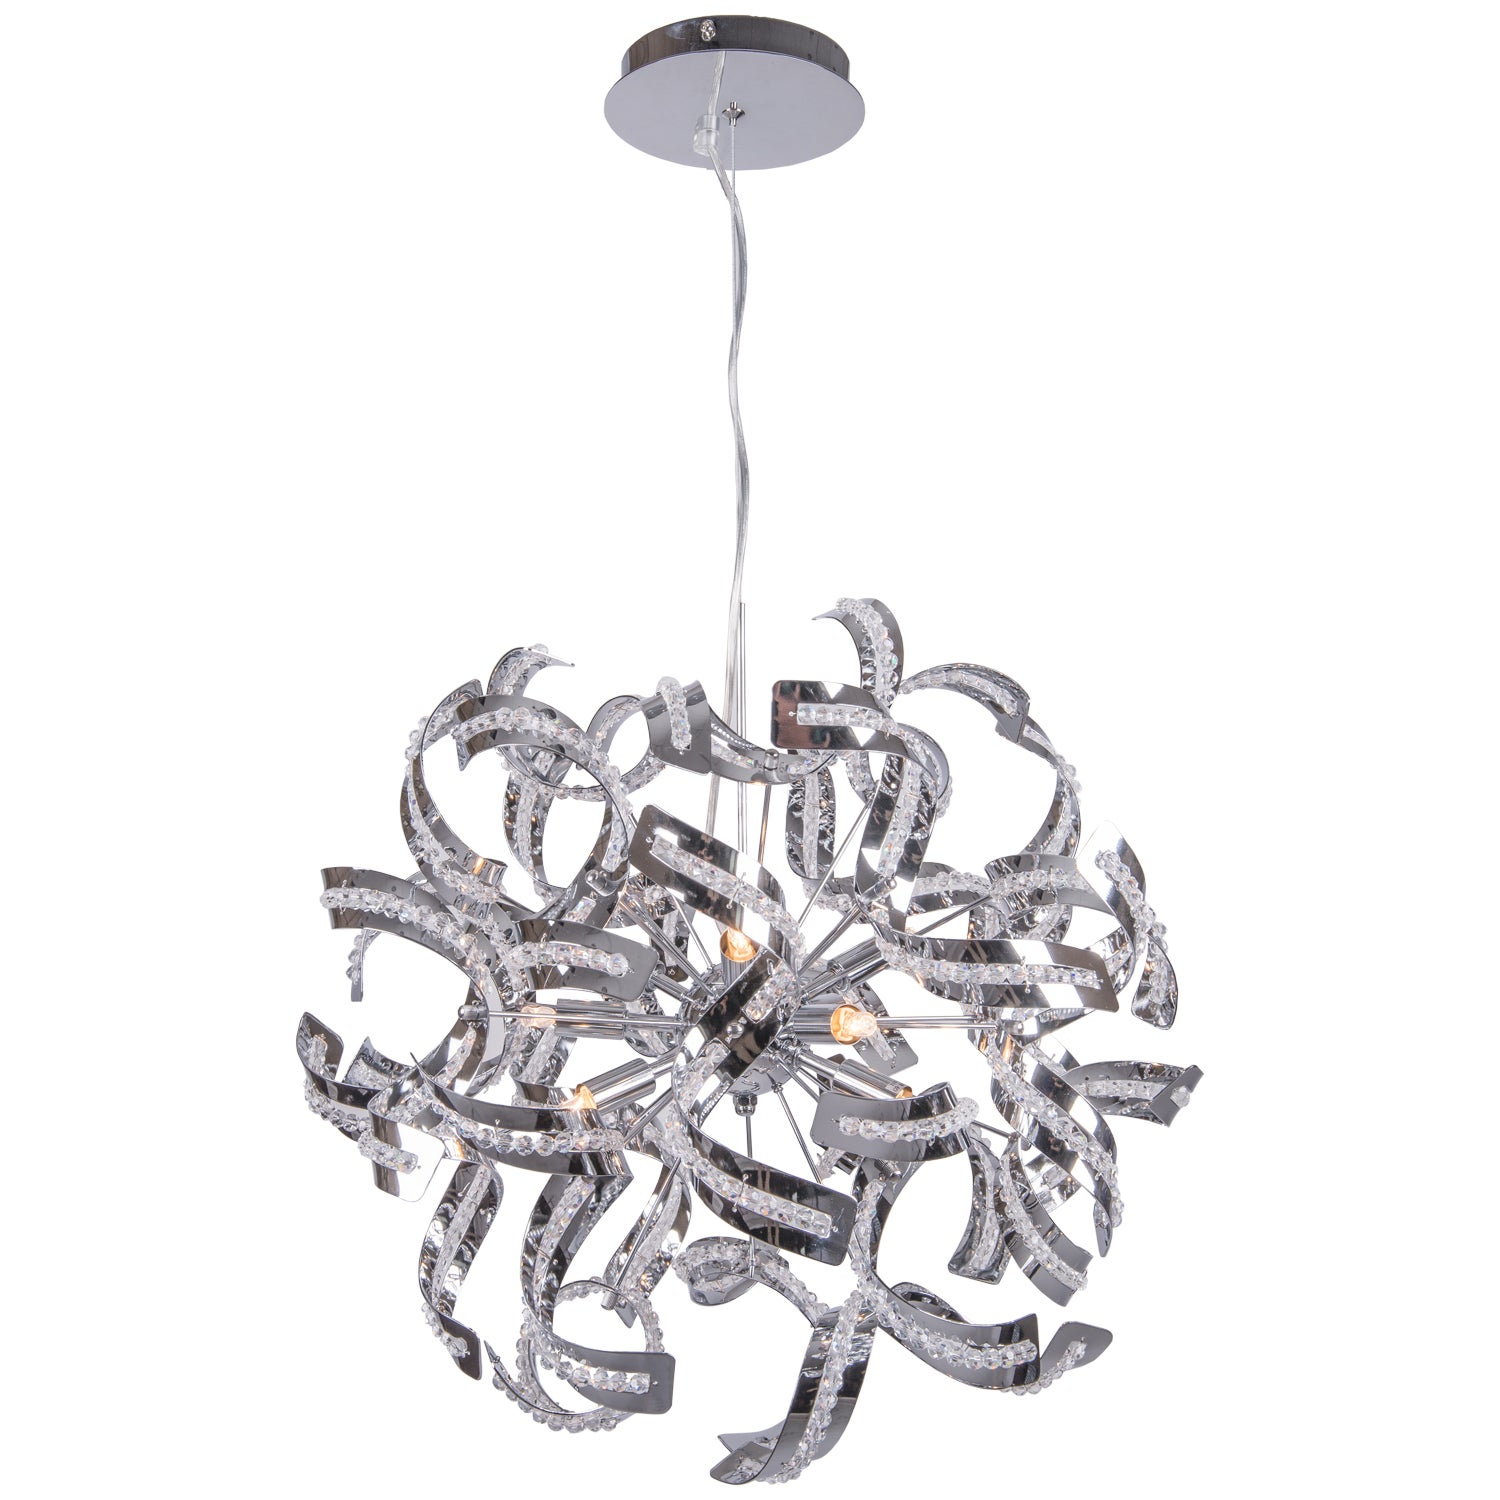 9 Light Chrome Ribbon Pendant with Crystal Accents Free Shipping